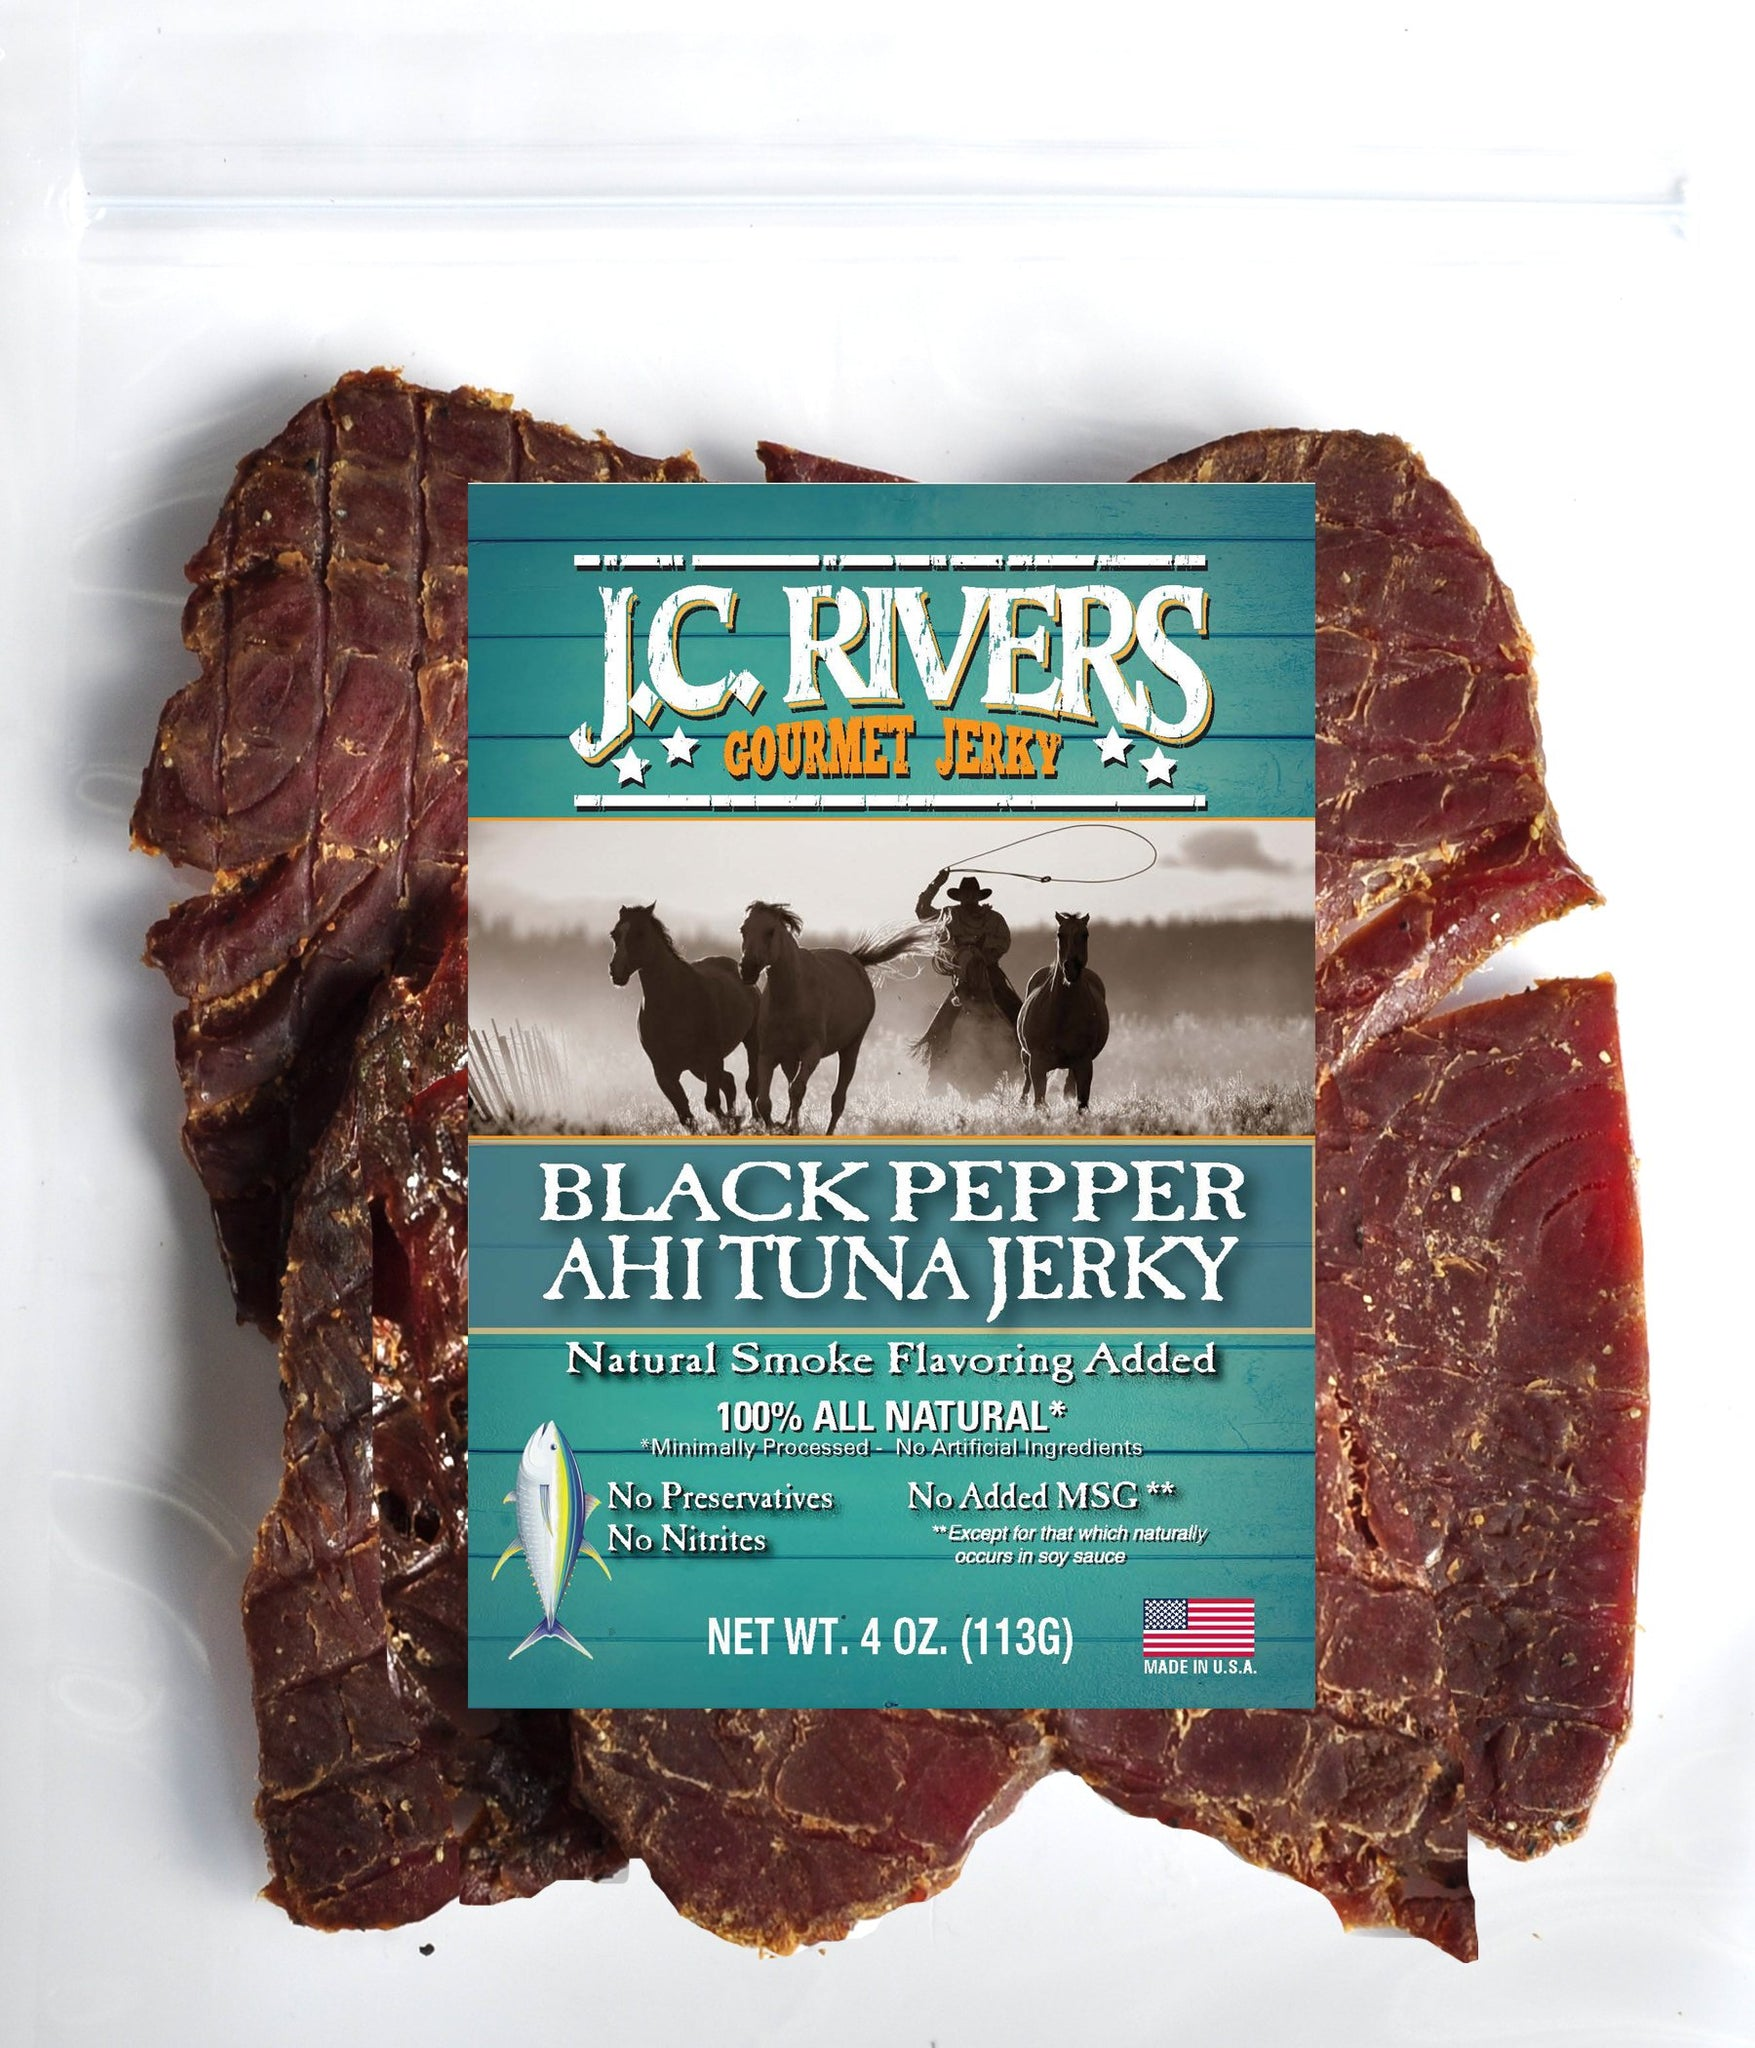 Black Pepper Ahi Tuna Jerky